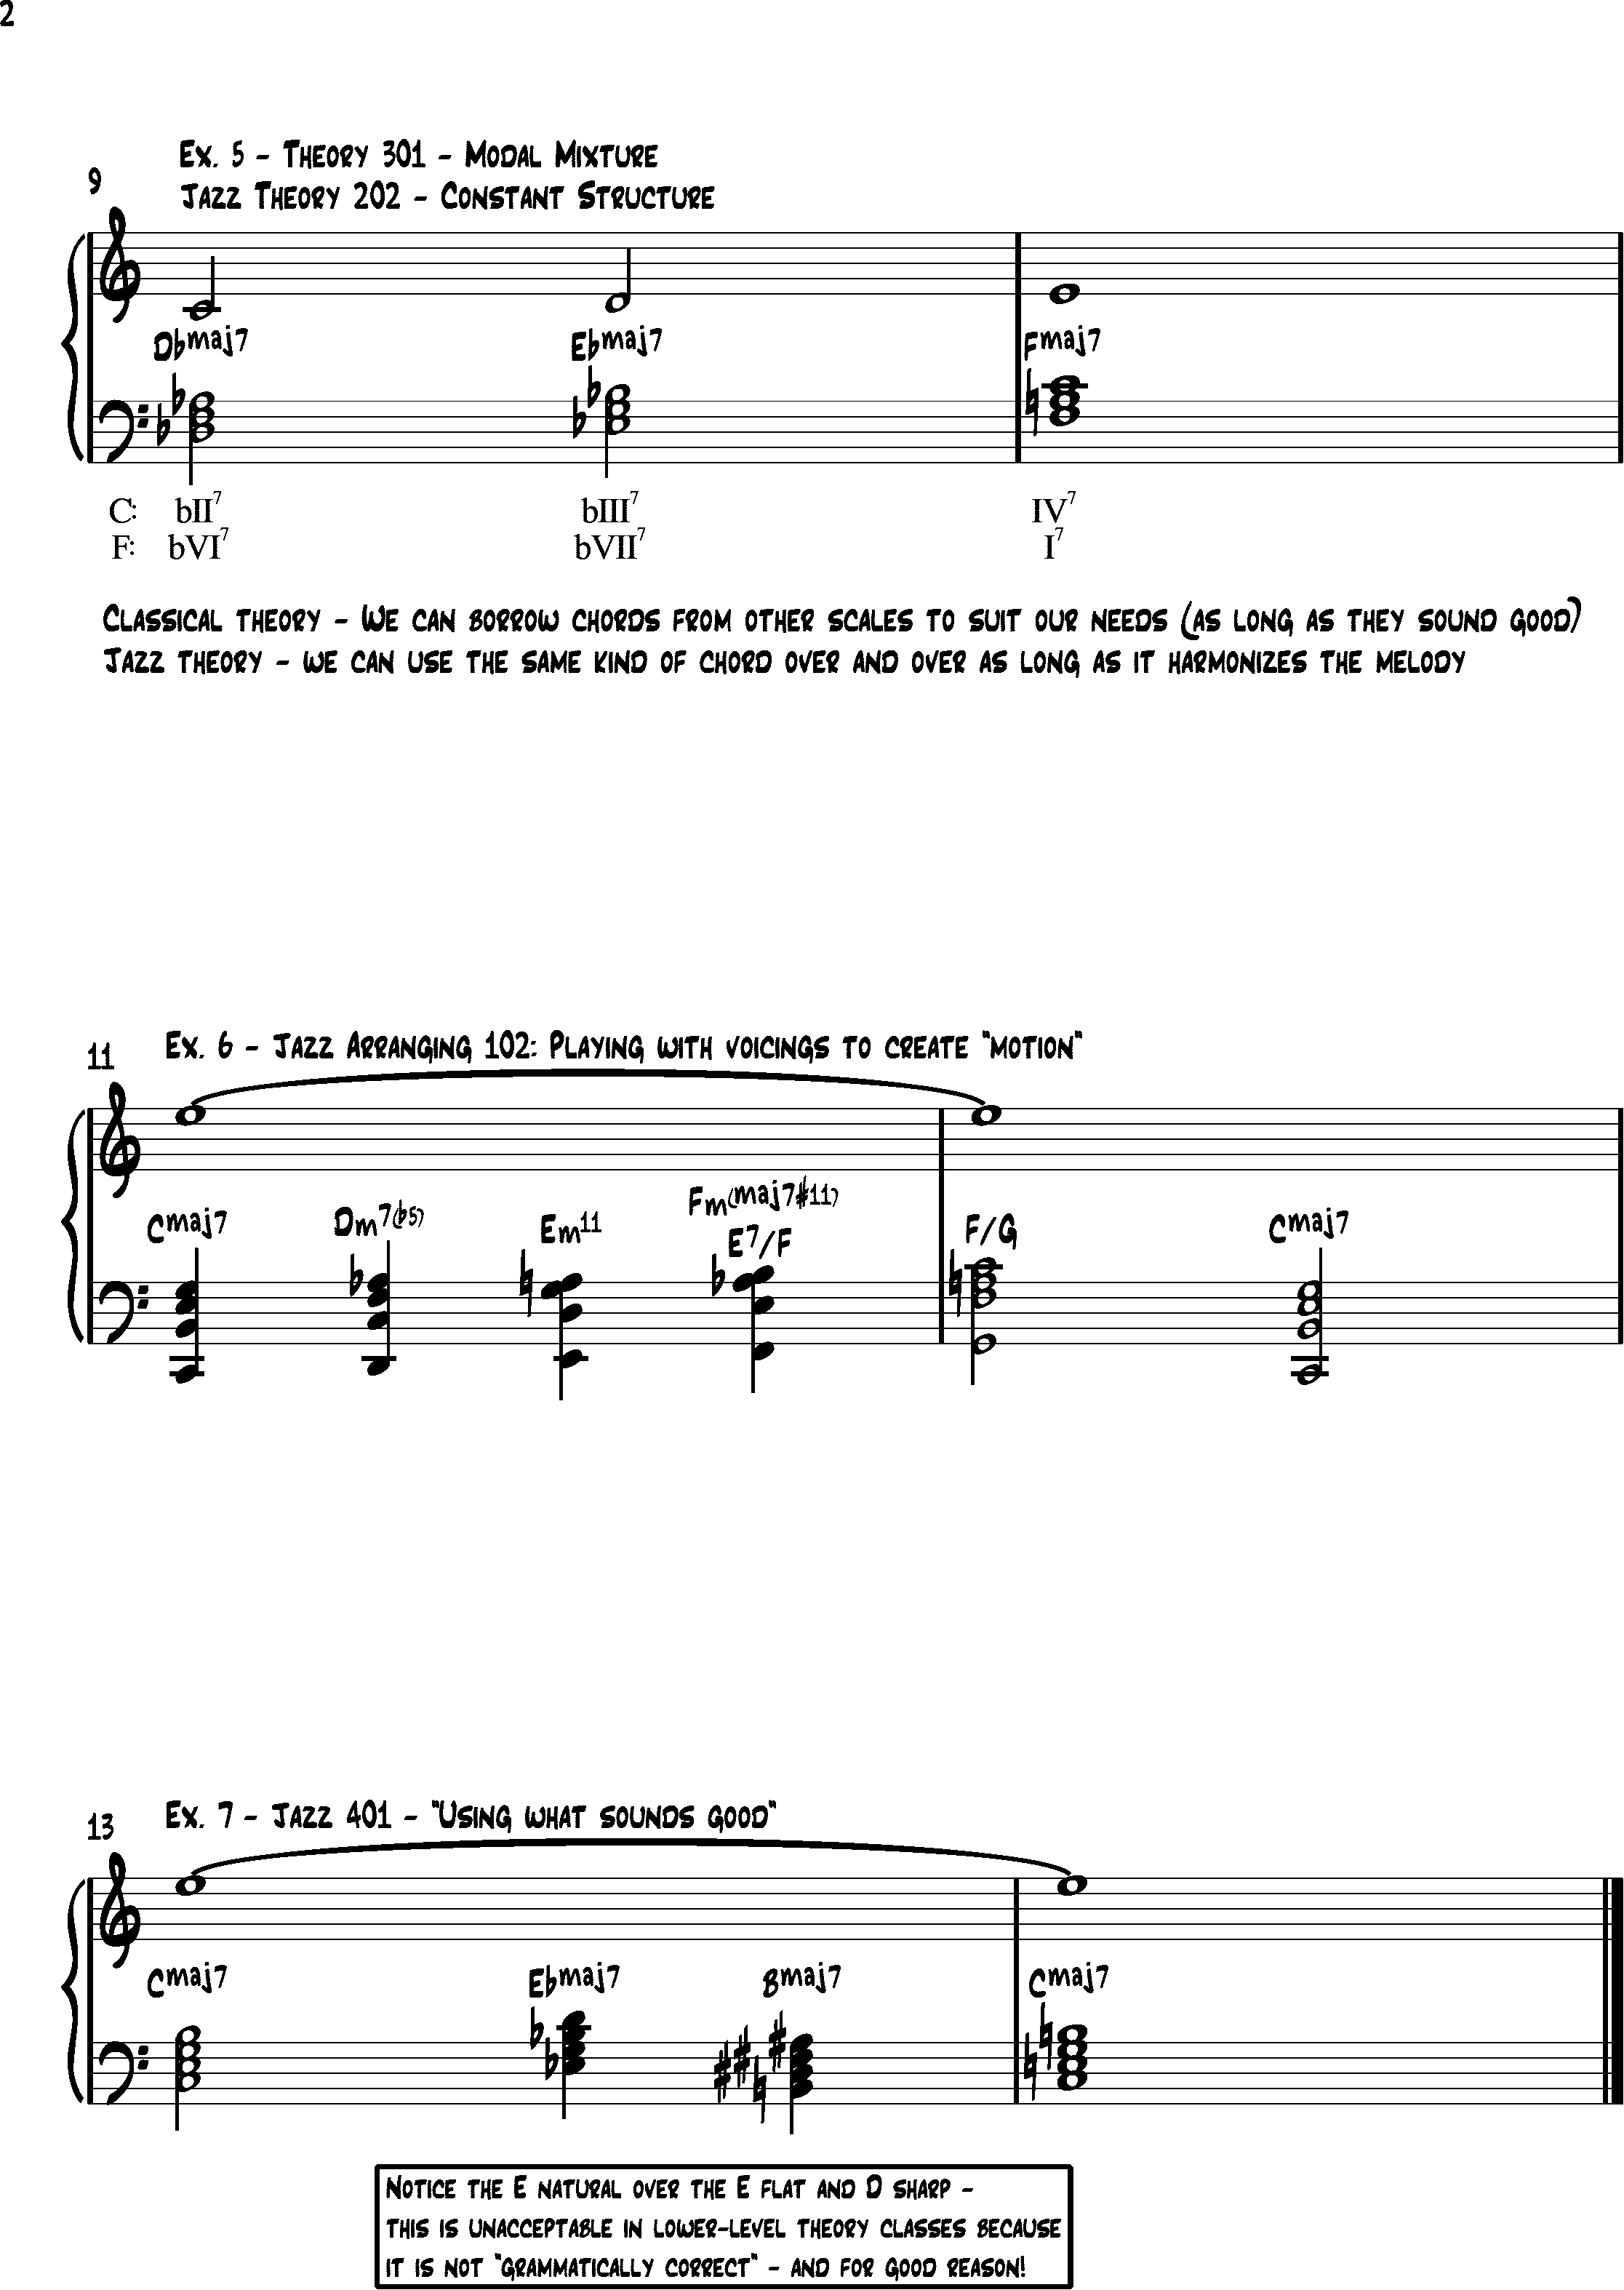 What Methods Are Used By Jazz Musicians To Fill In